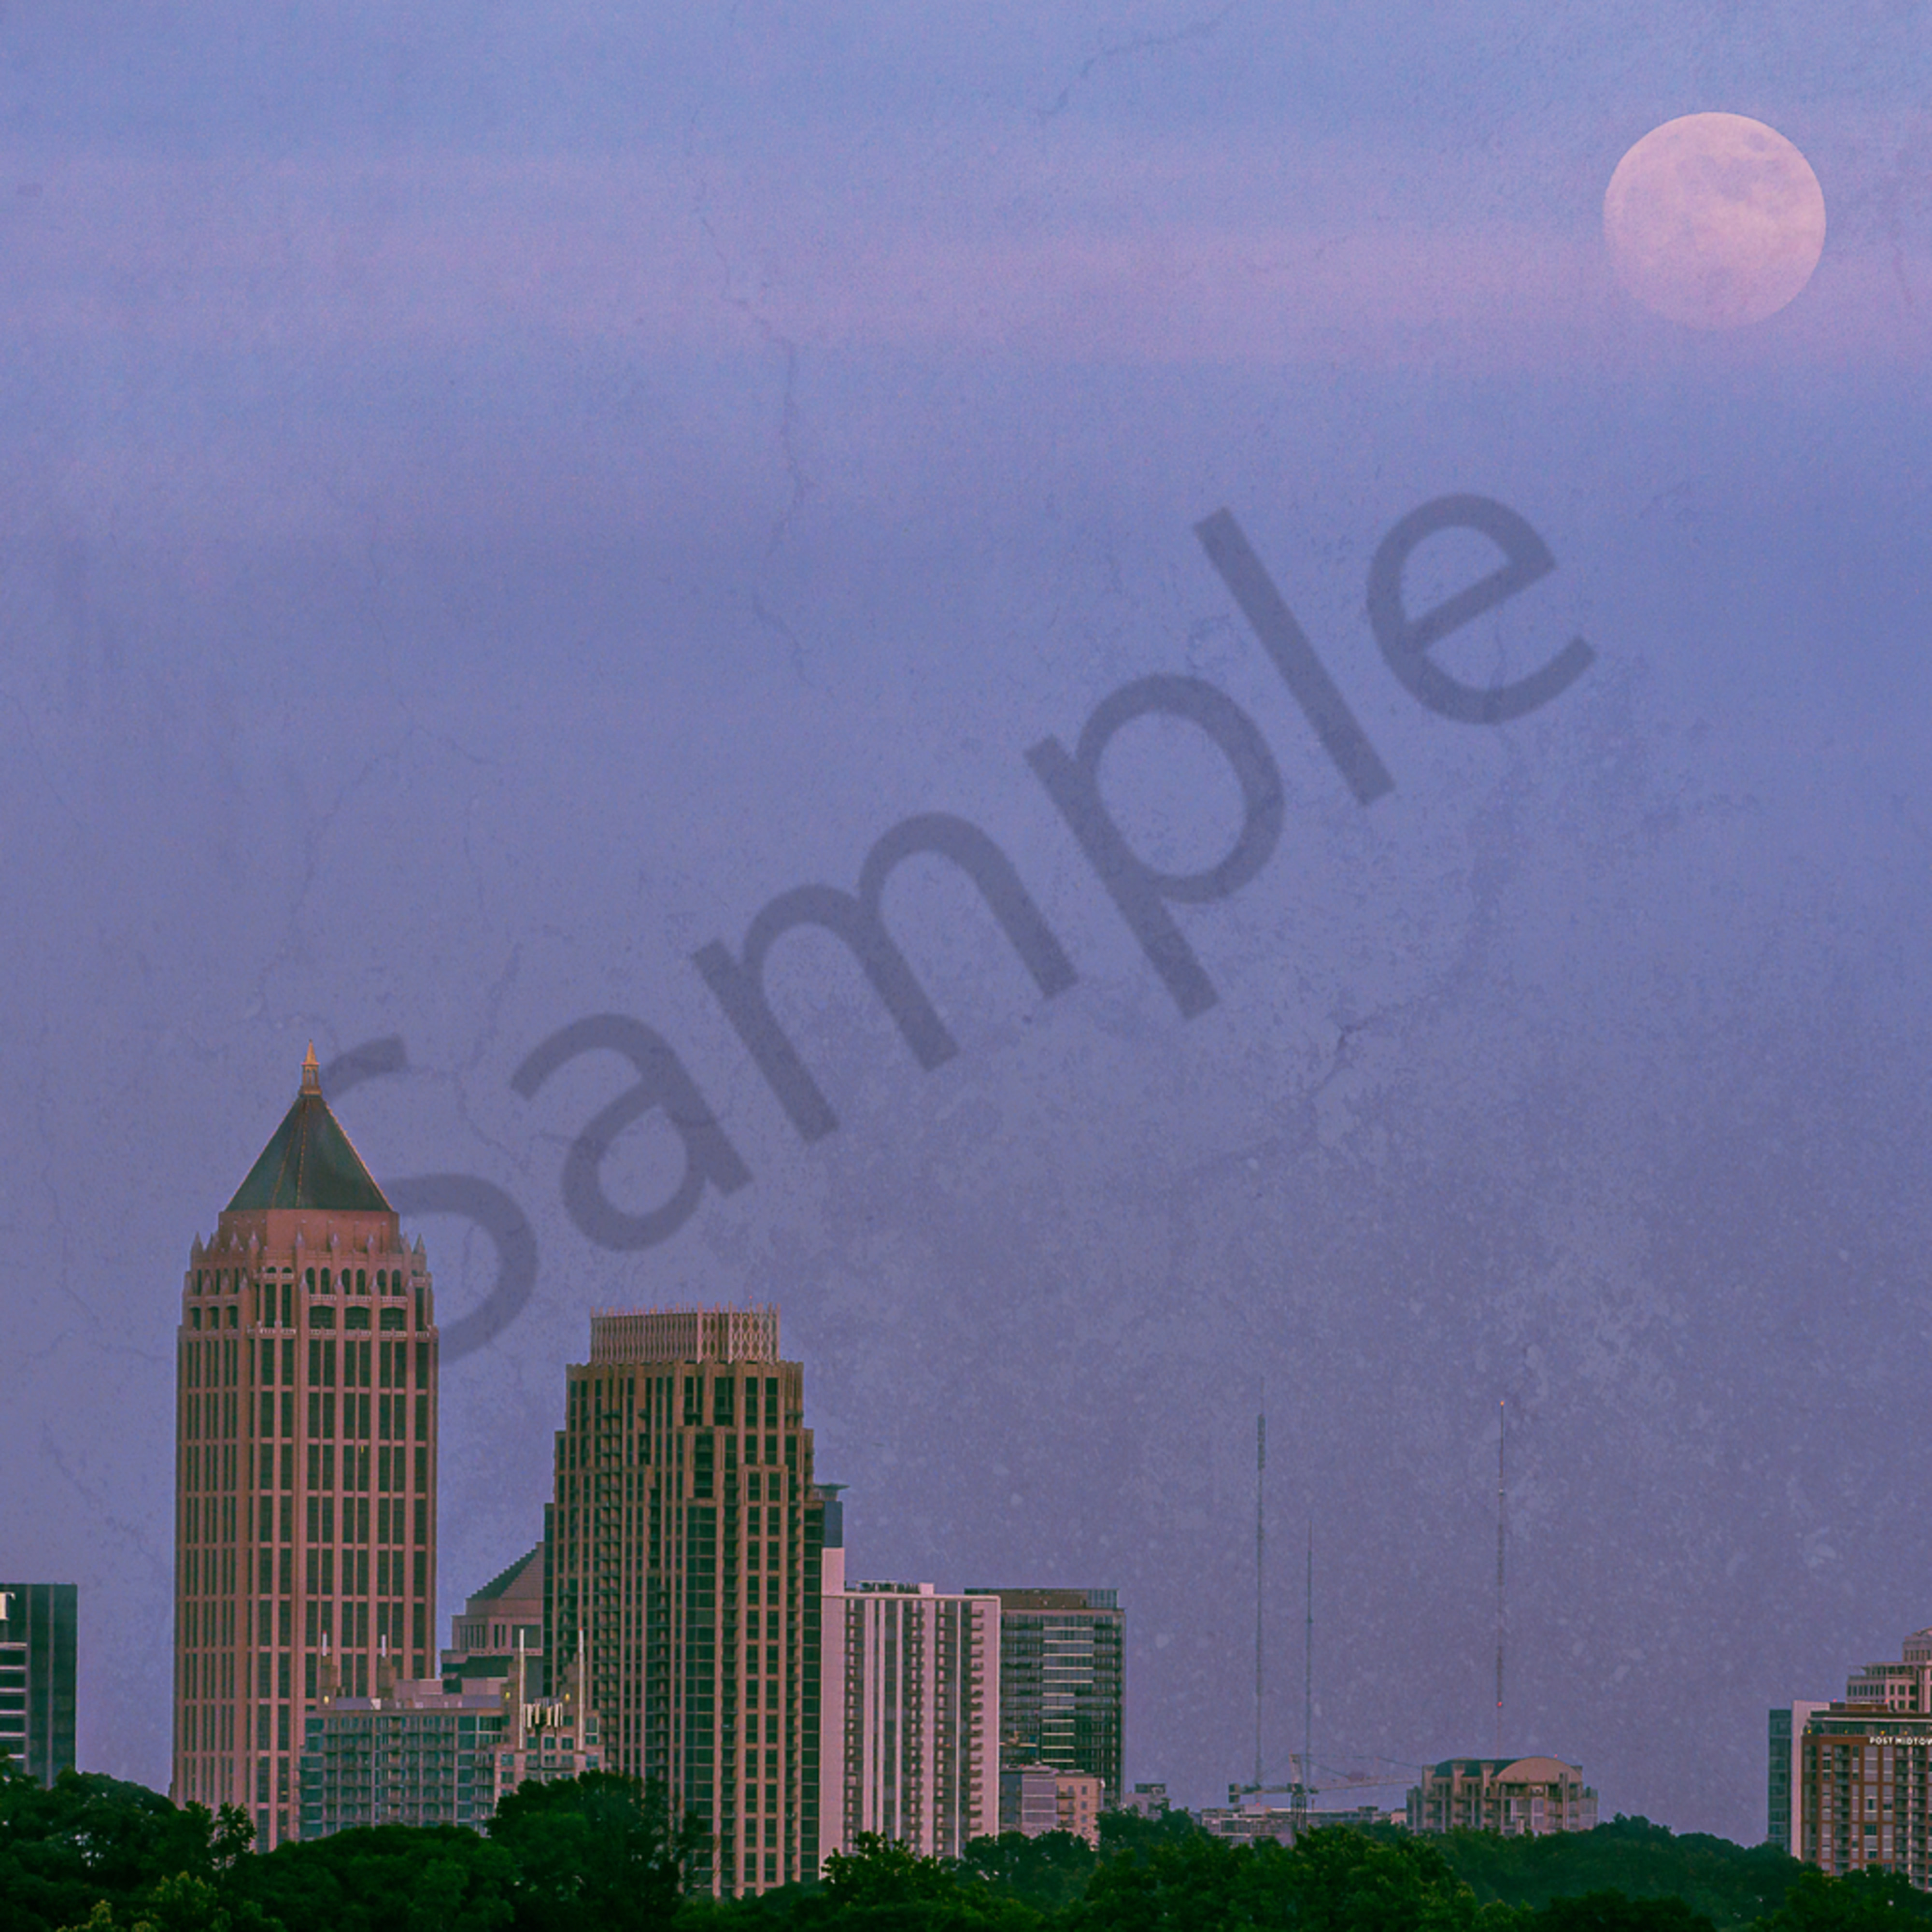 Moonrise over the city in the trees oyhty7